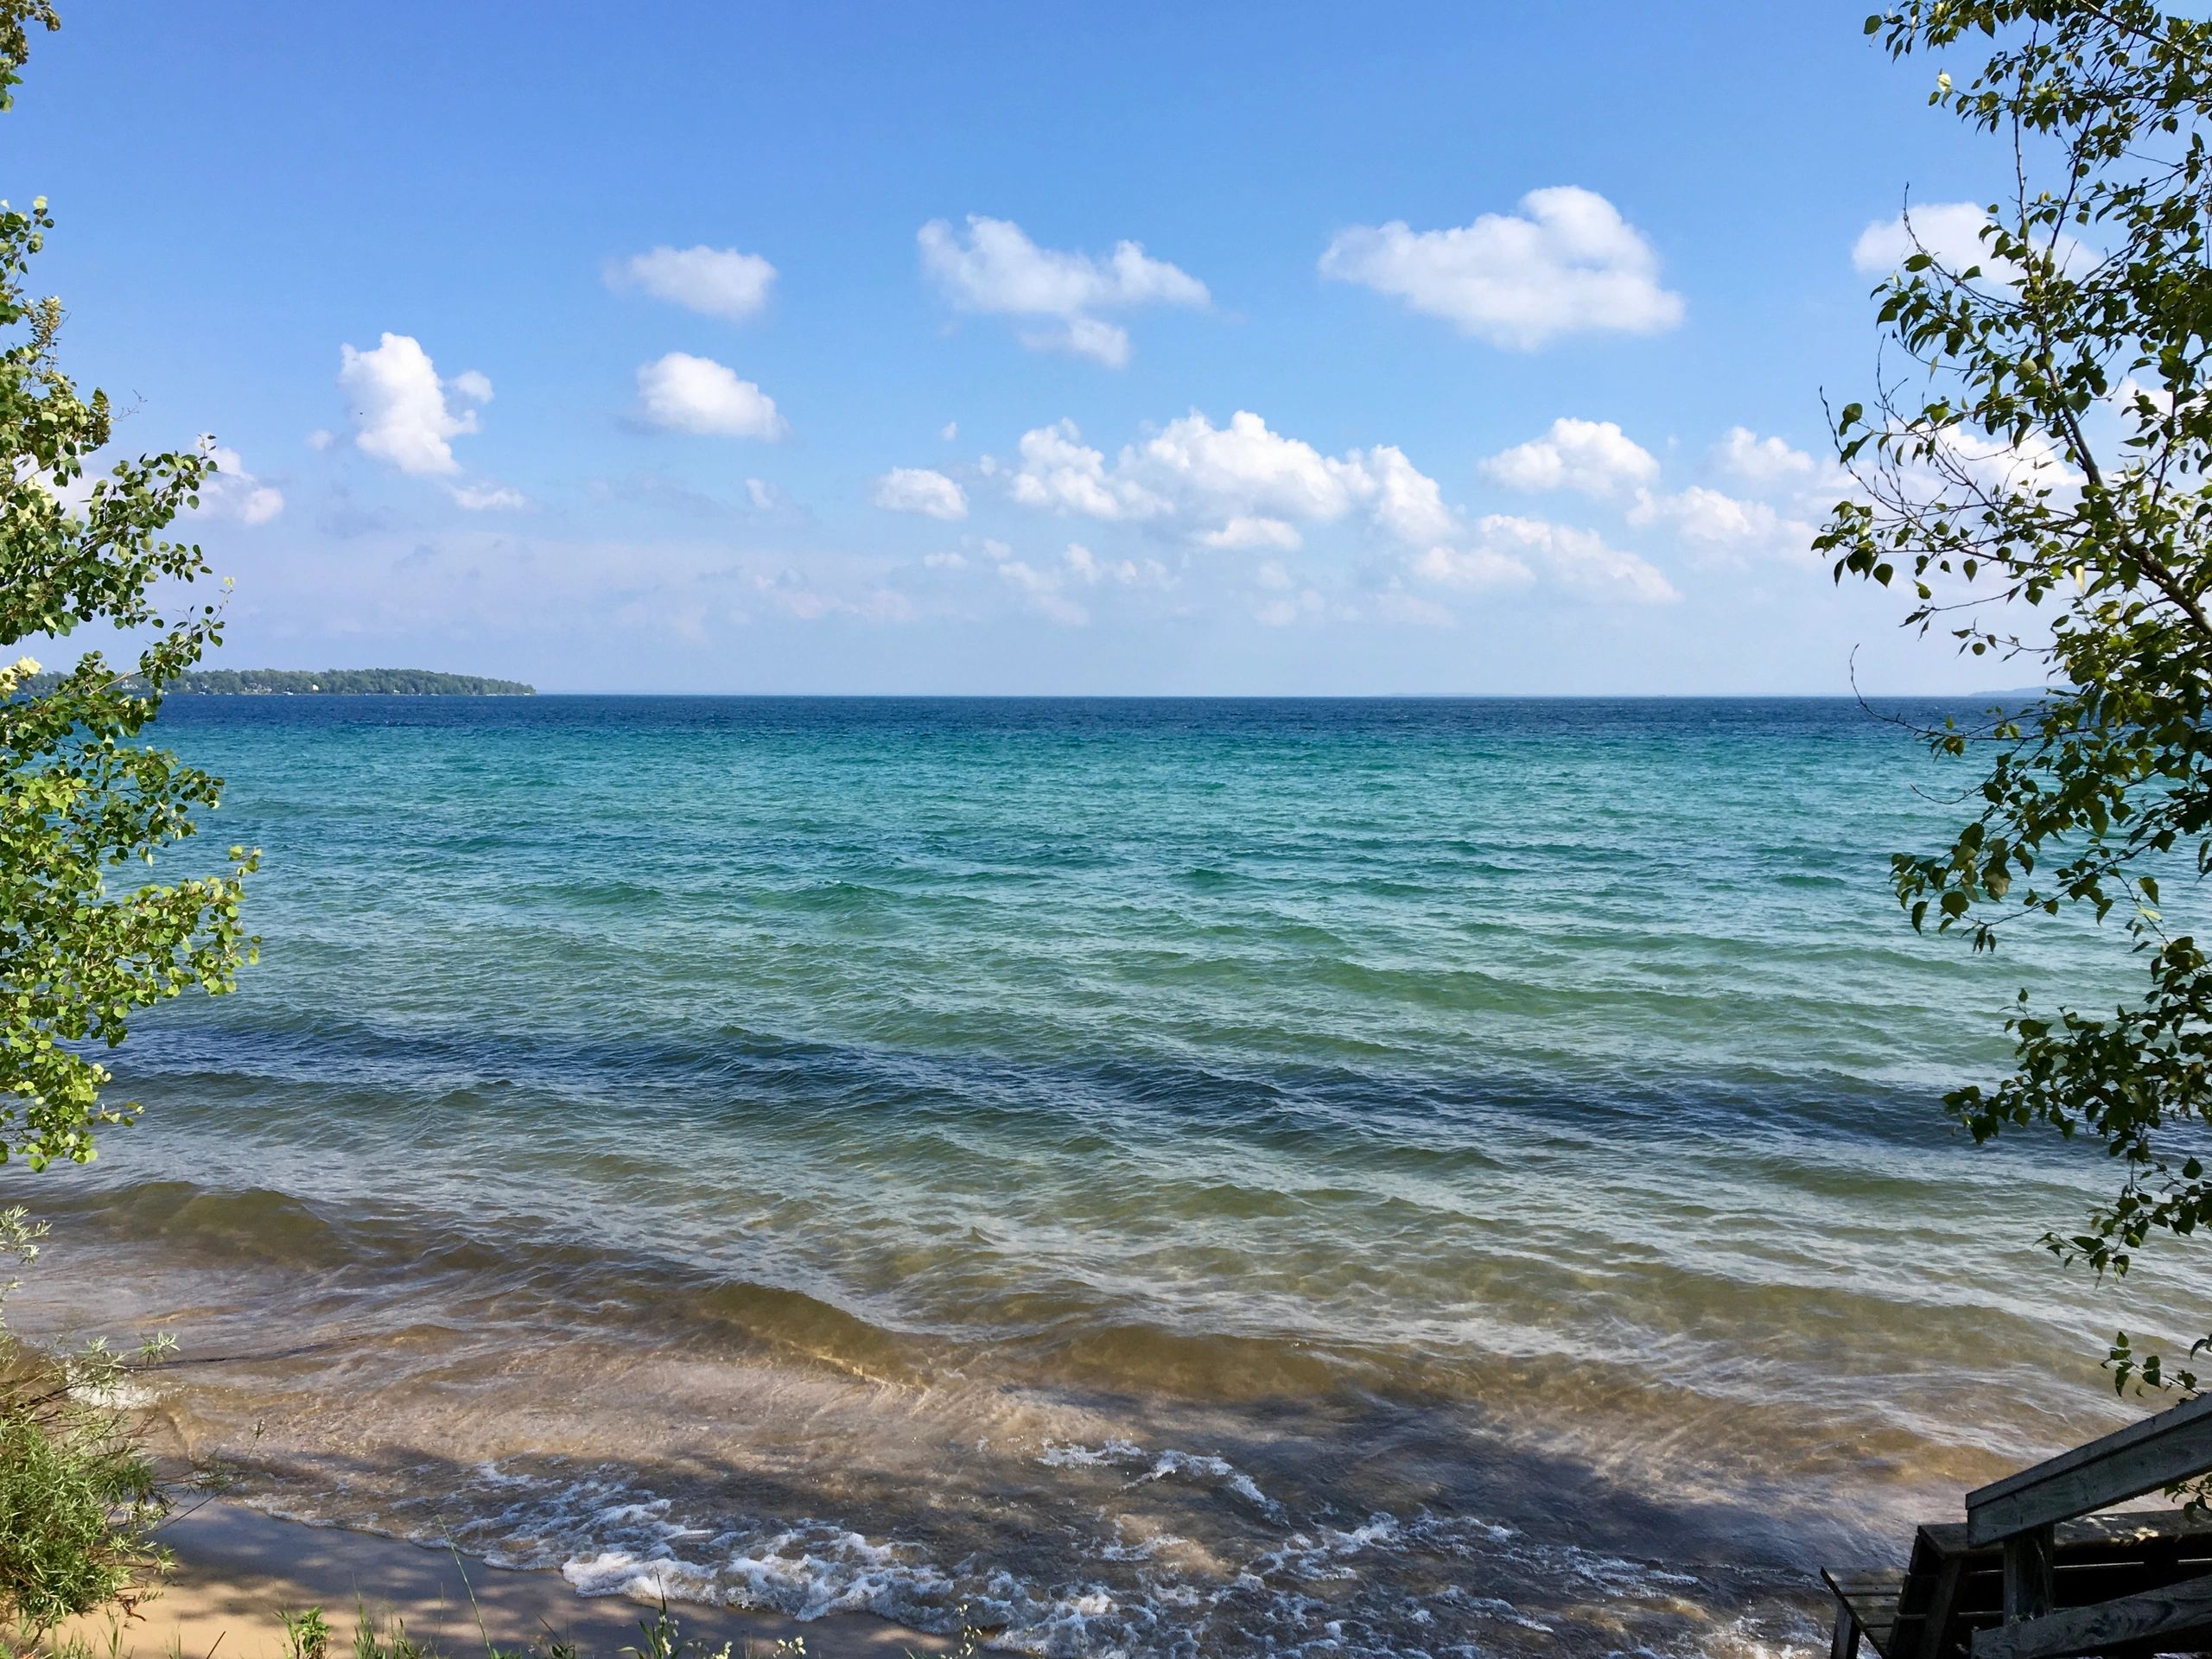 Grand Traverse Bay, Lake Michigan, a source of inspiration for our car window decals, hats, shirts.